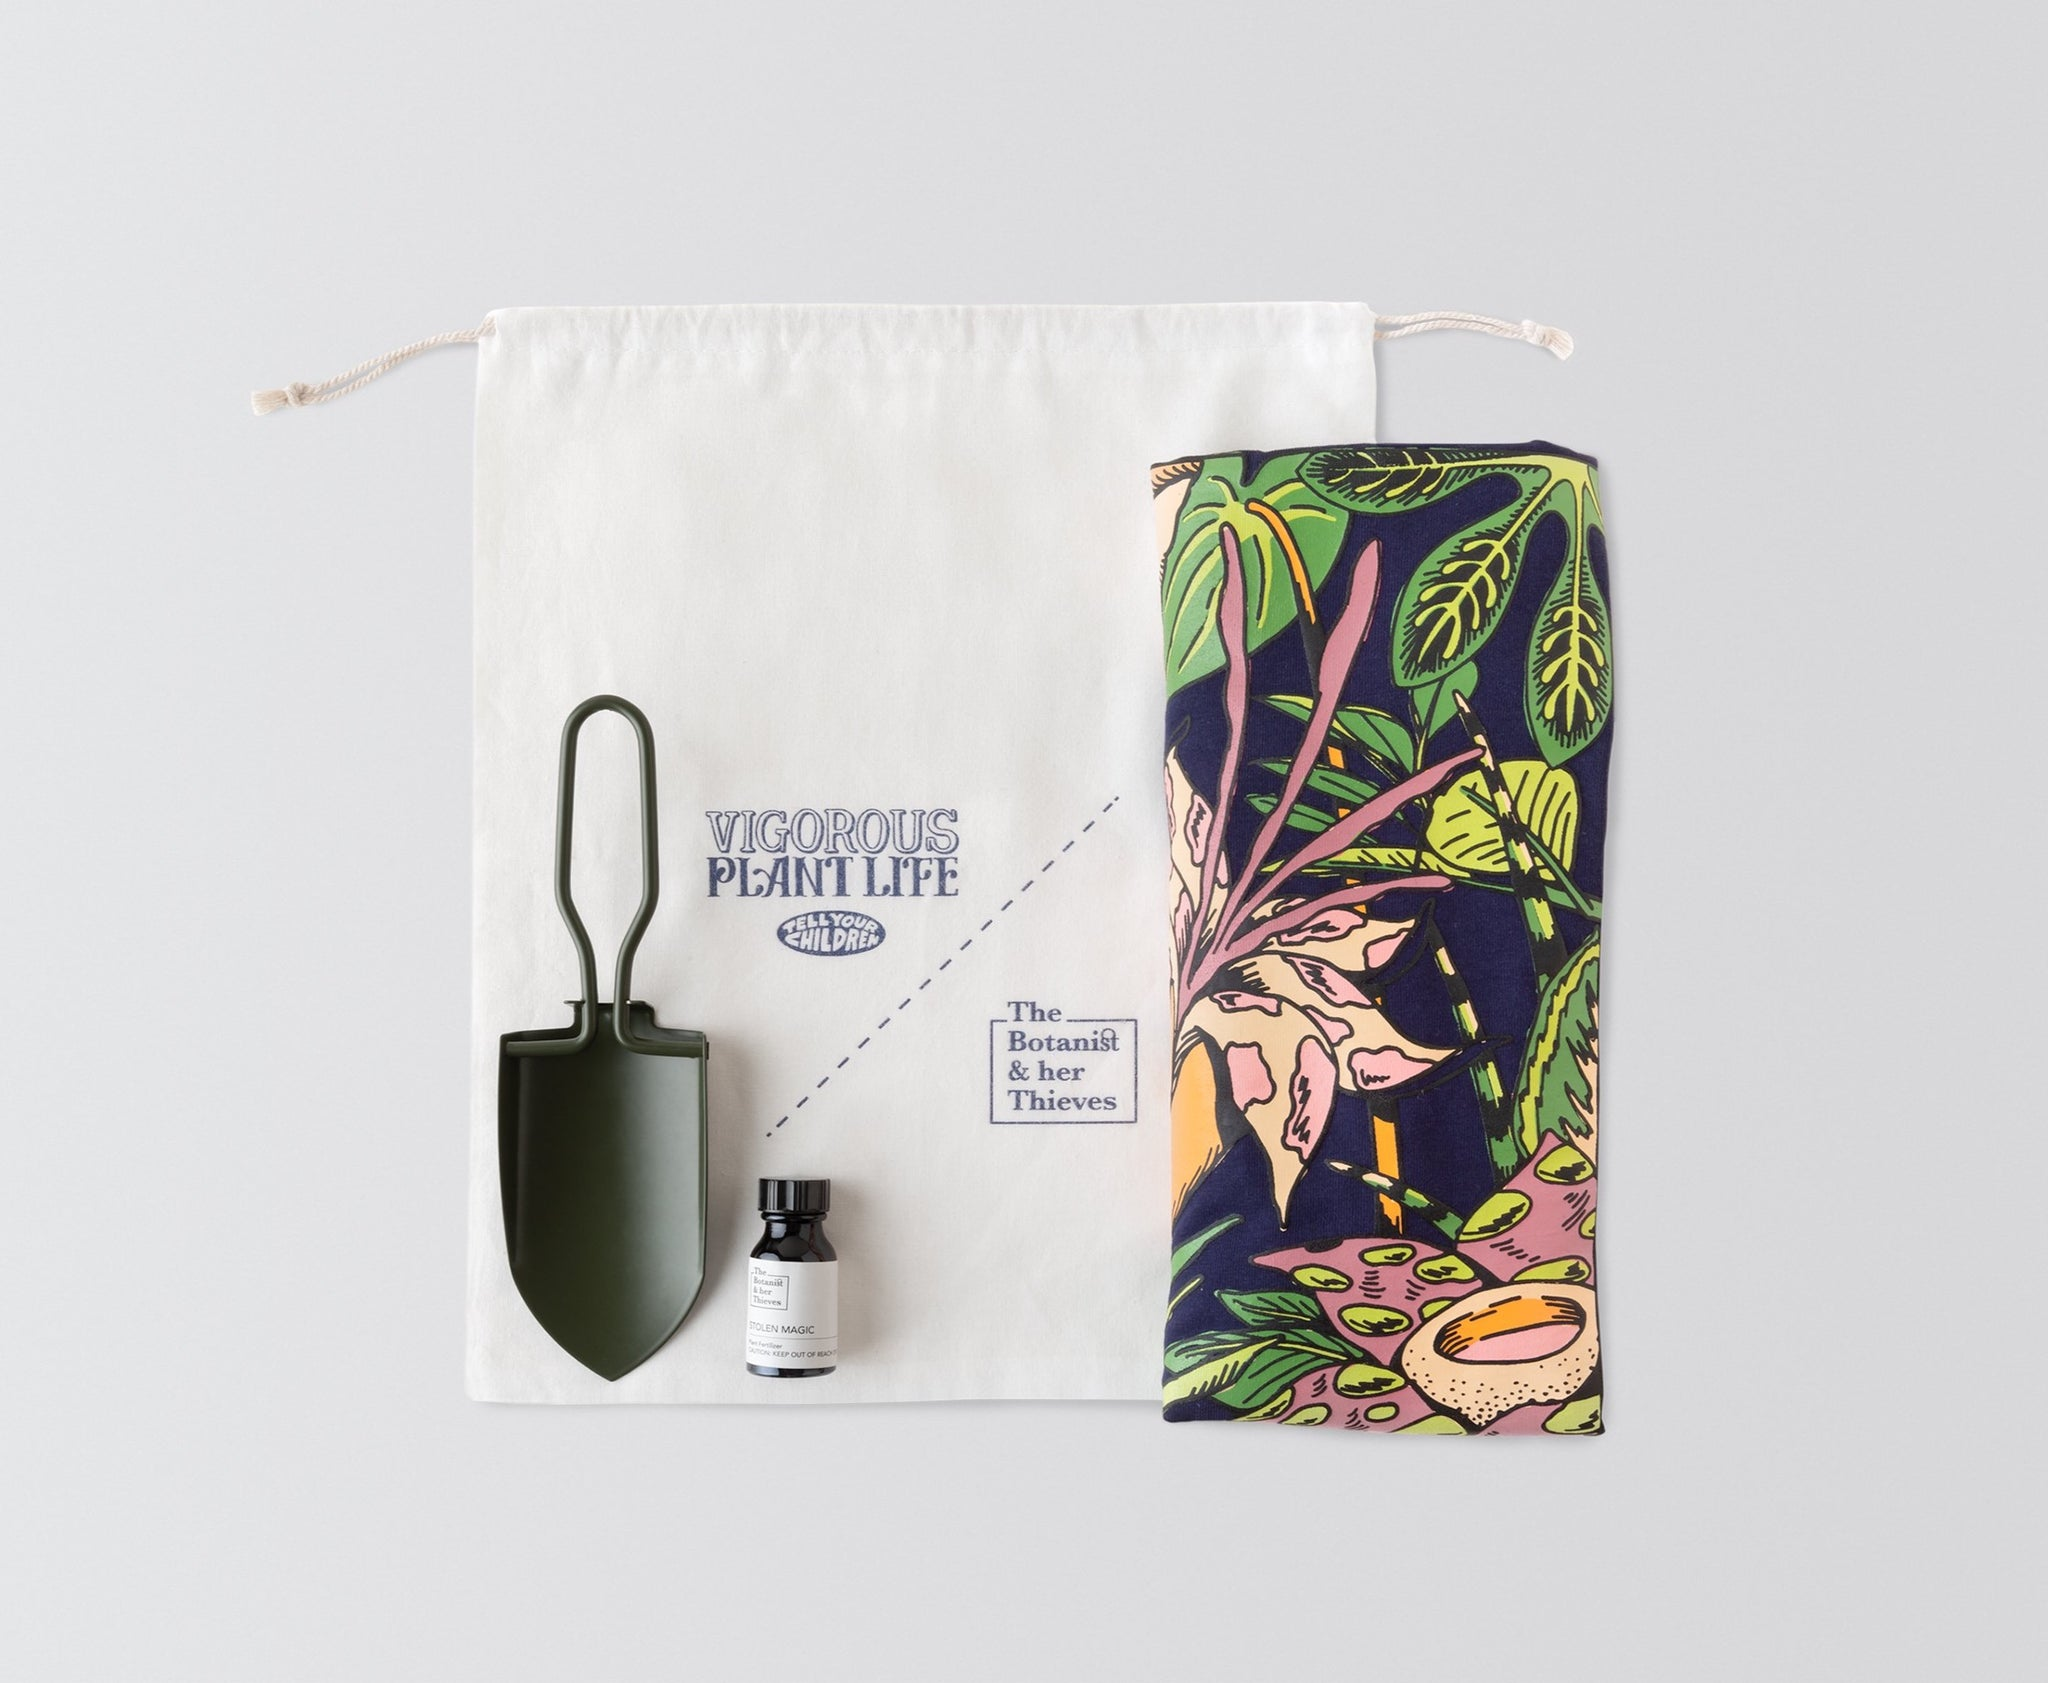 [EXCLUSIVE] Vigorous Plant Life Tee Bag